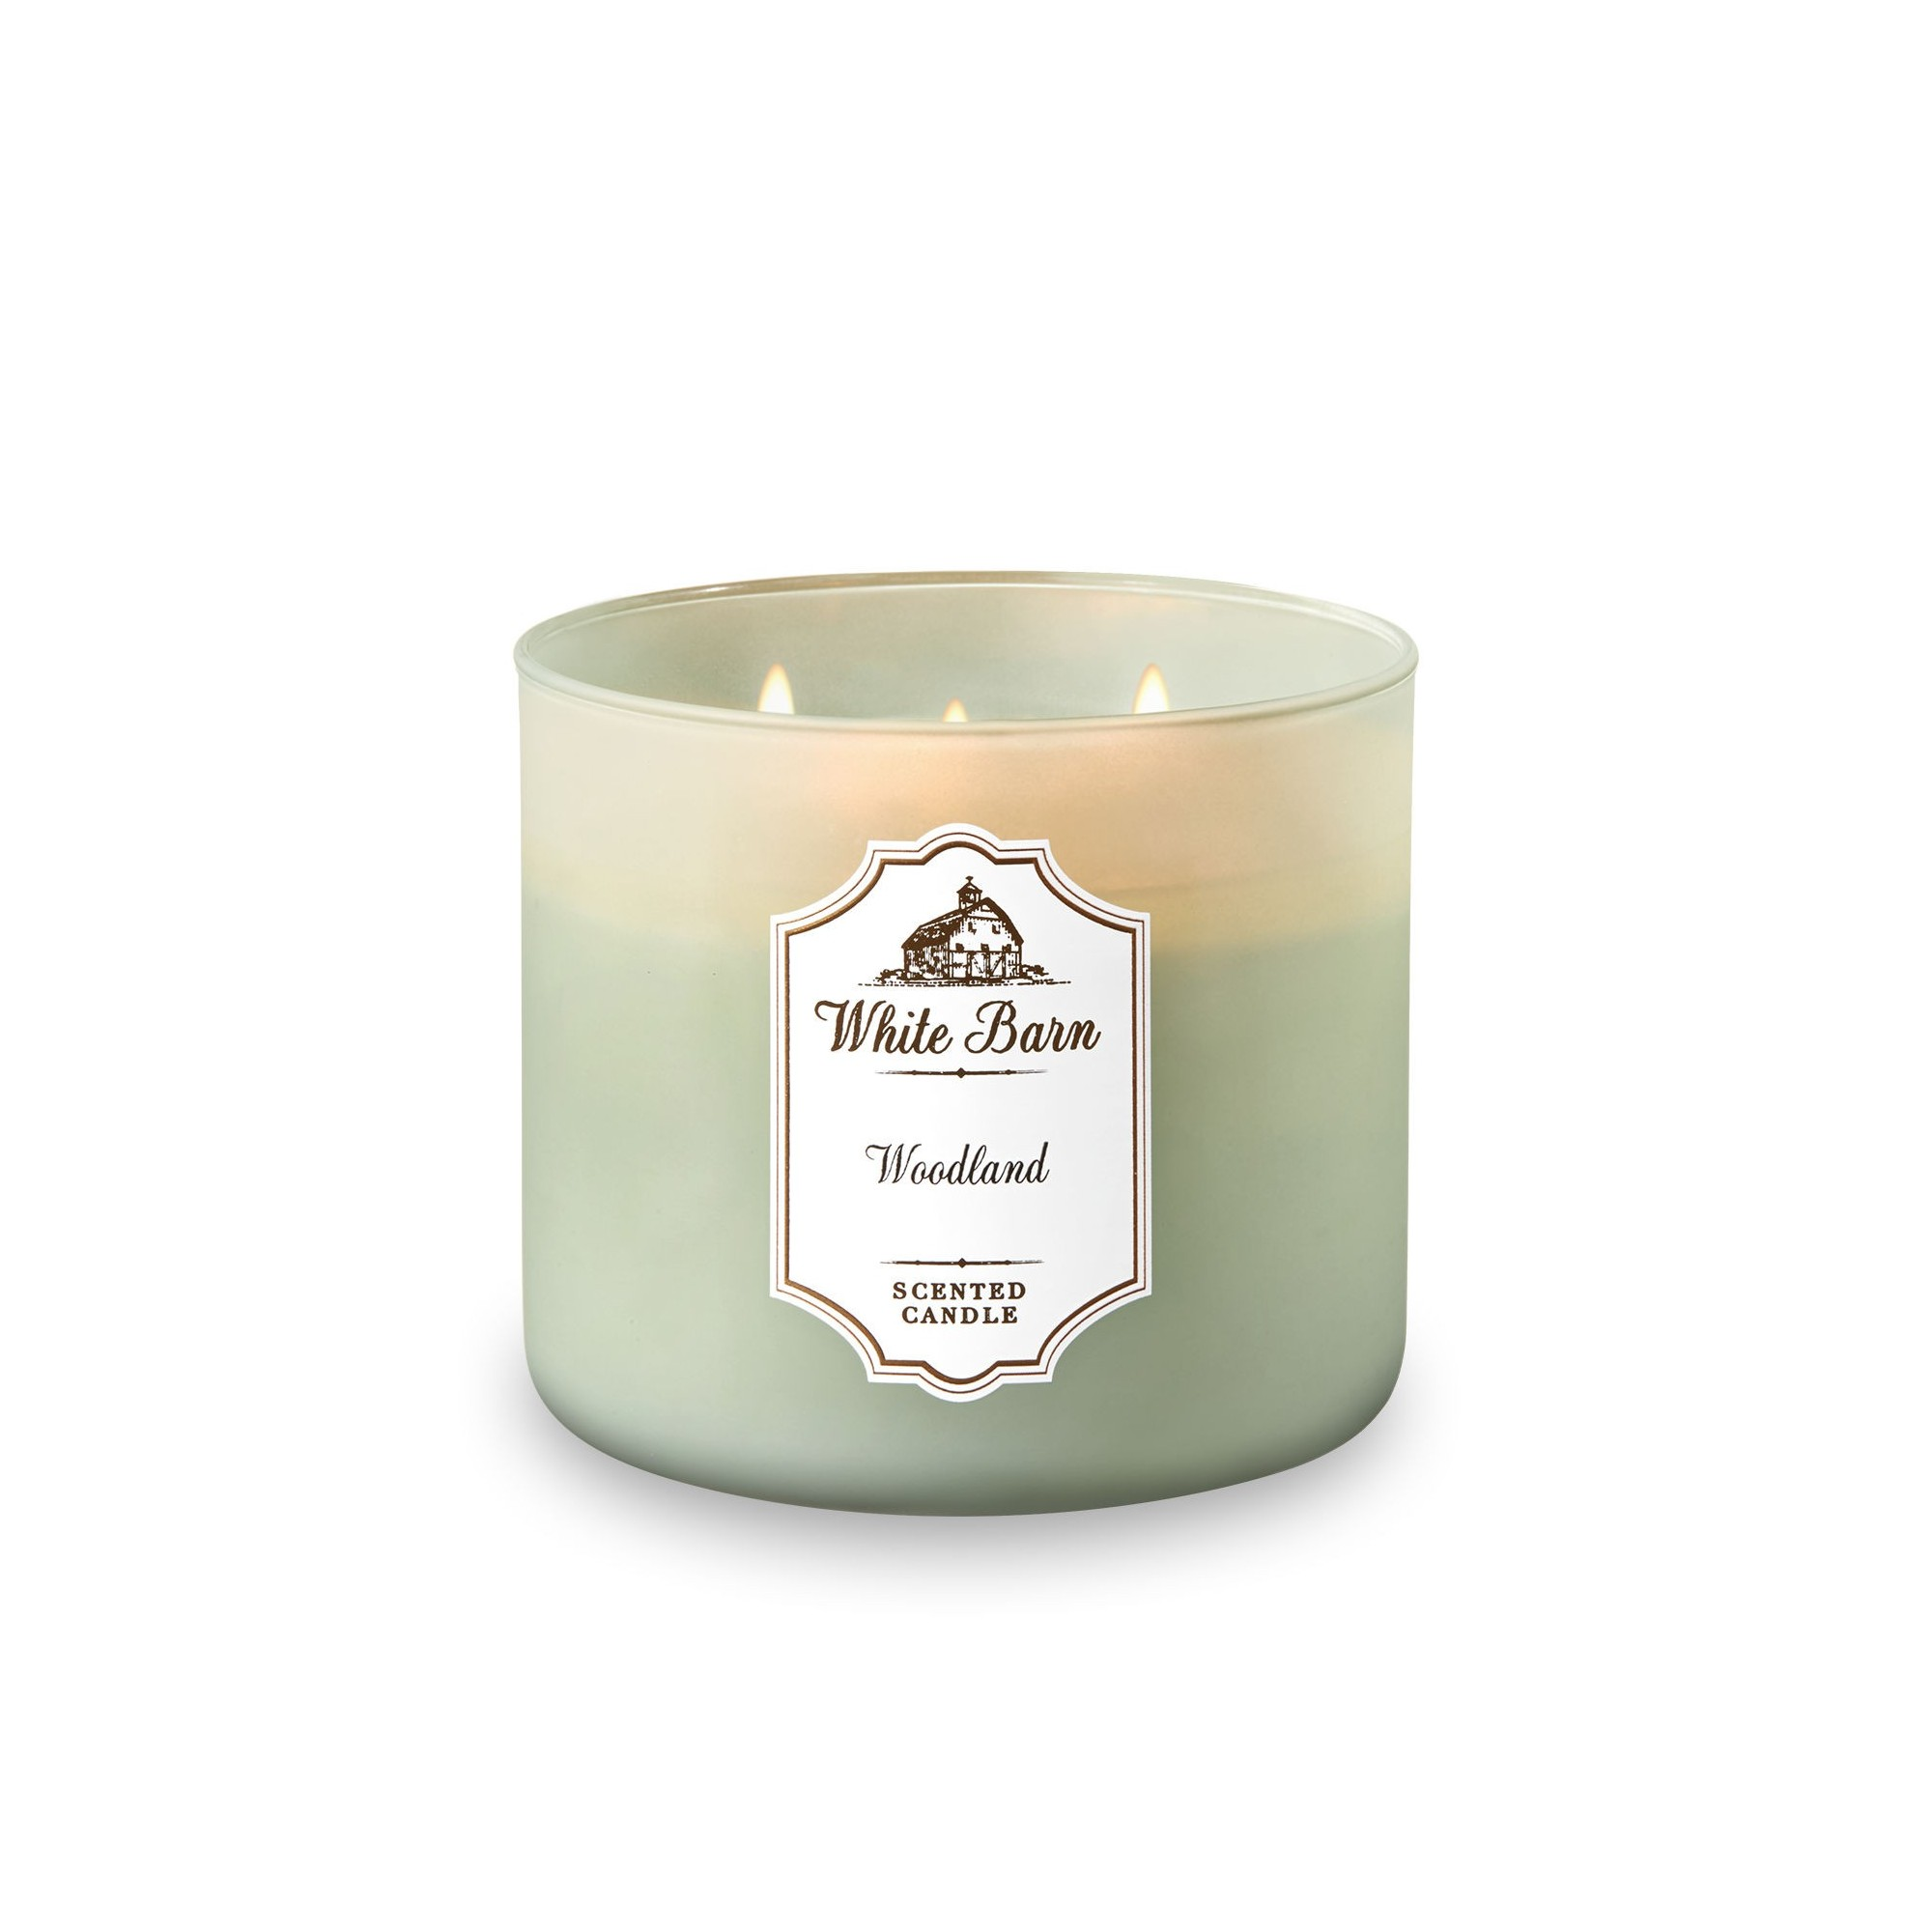 Bath & Body Works White Barn Woodland 3 Wick Scented Candle